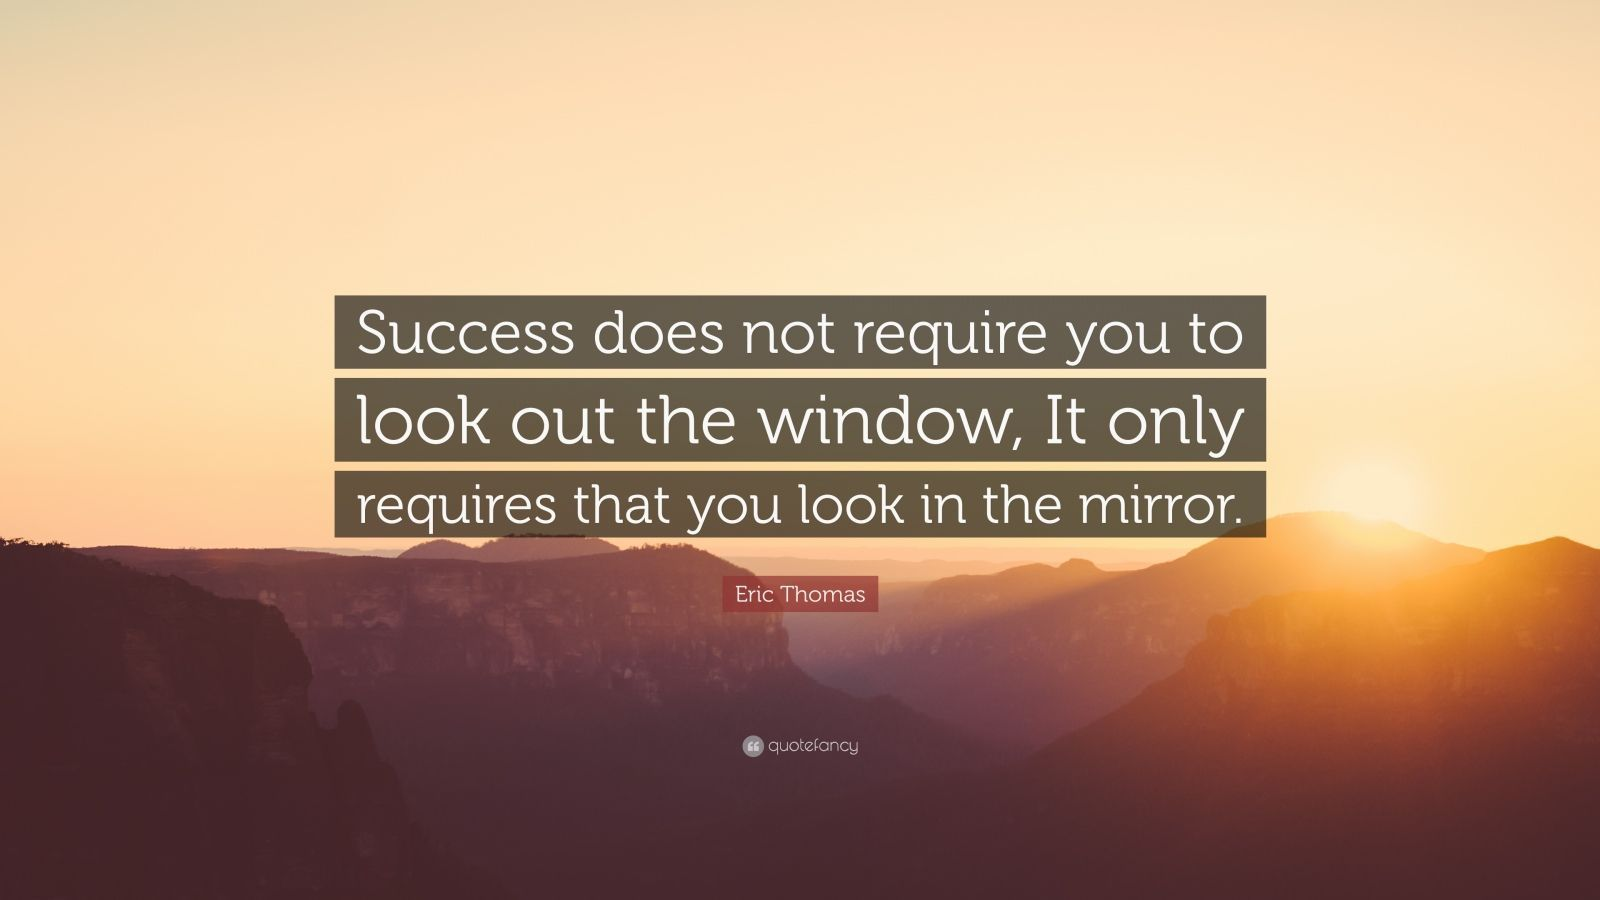 files/images/1842842-Eric-Thomas-Quote-Success-does-not-require-you-to-look-out-the.jpg